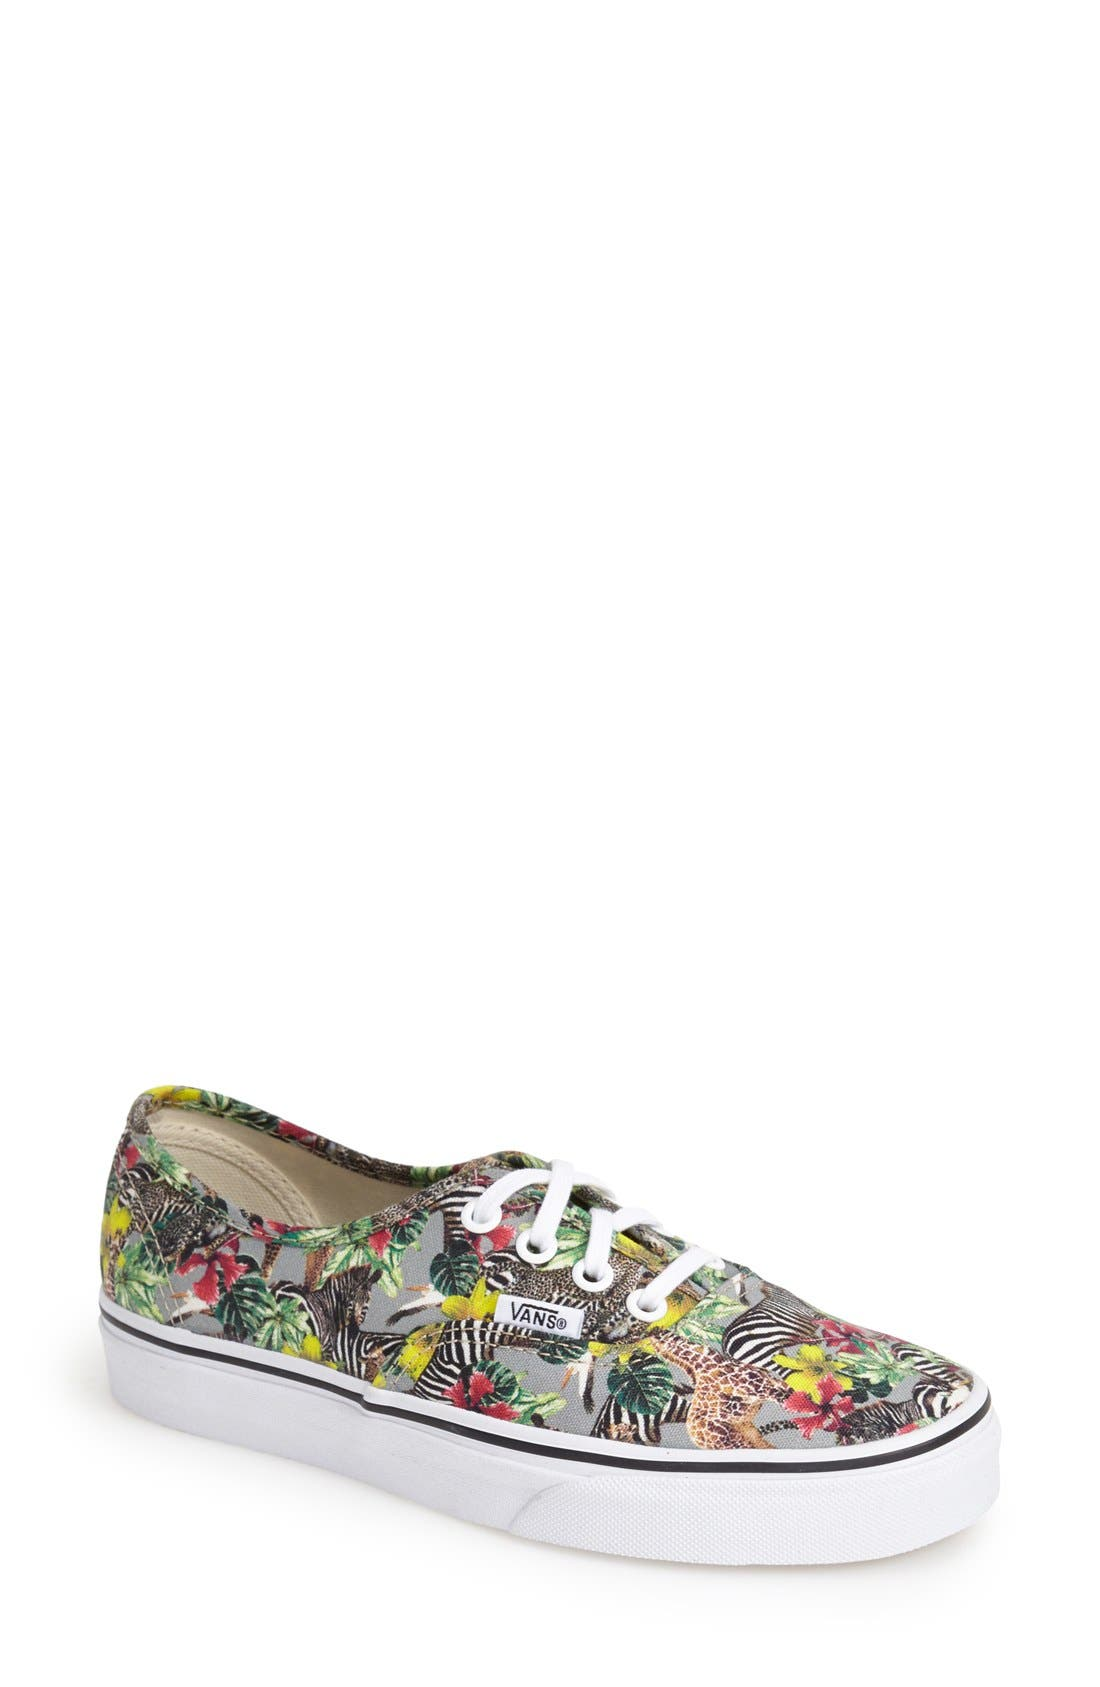 Alternate Image 1 Selected - Vans 'Authentic - Kenya' Sneaker (Women)